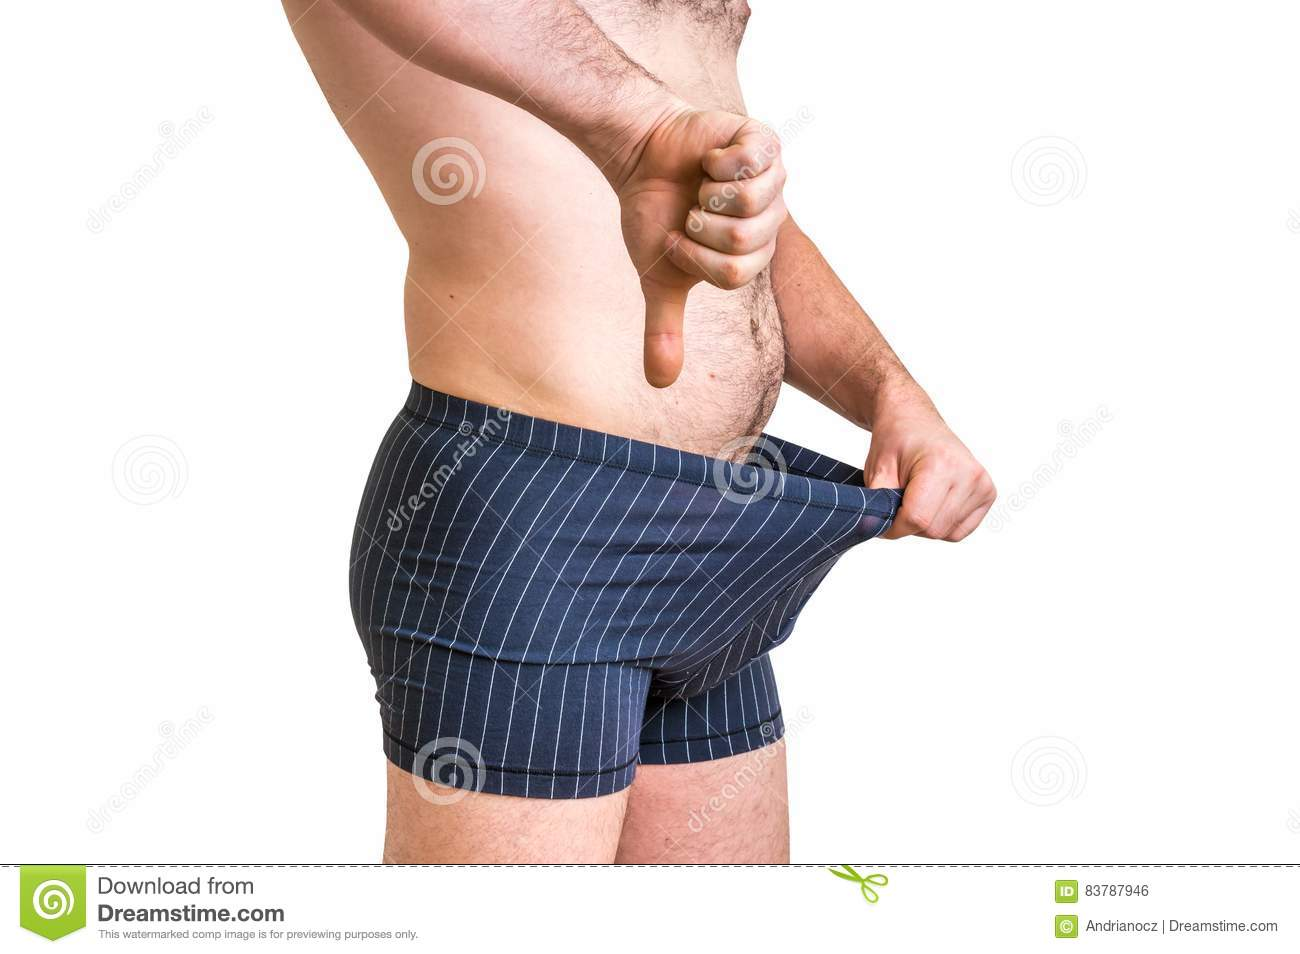 Man is looking in his underwear and pointing thumb down